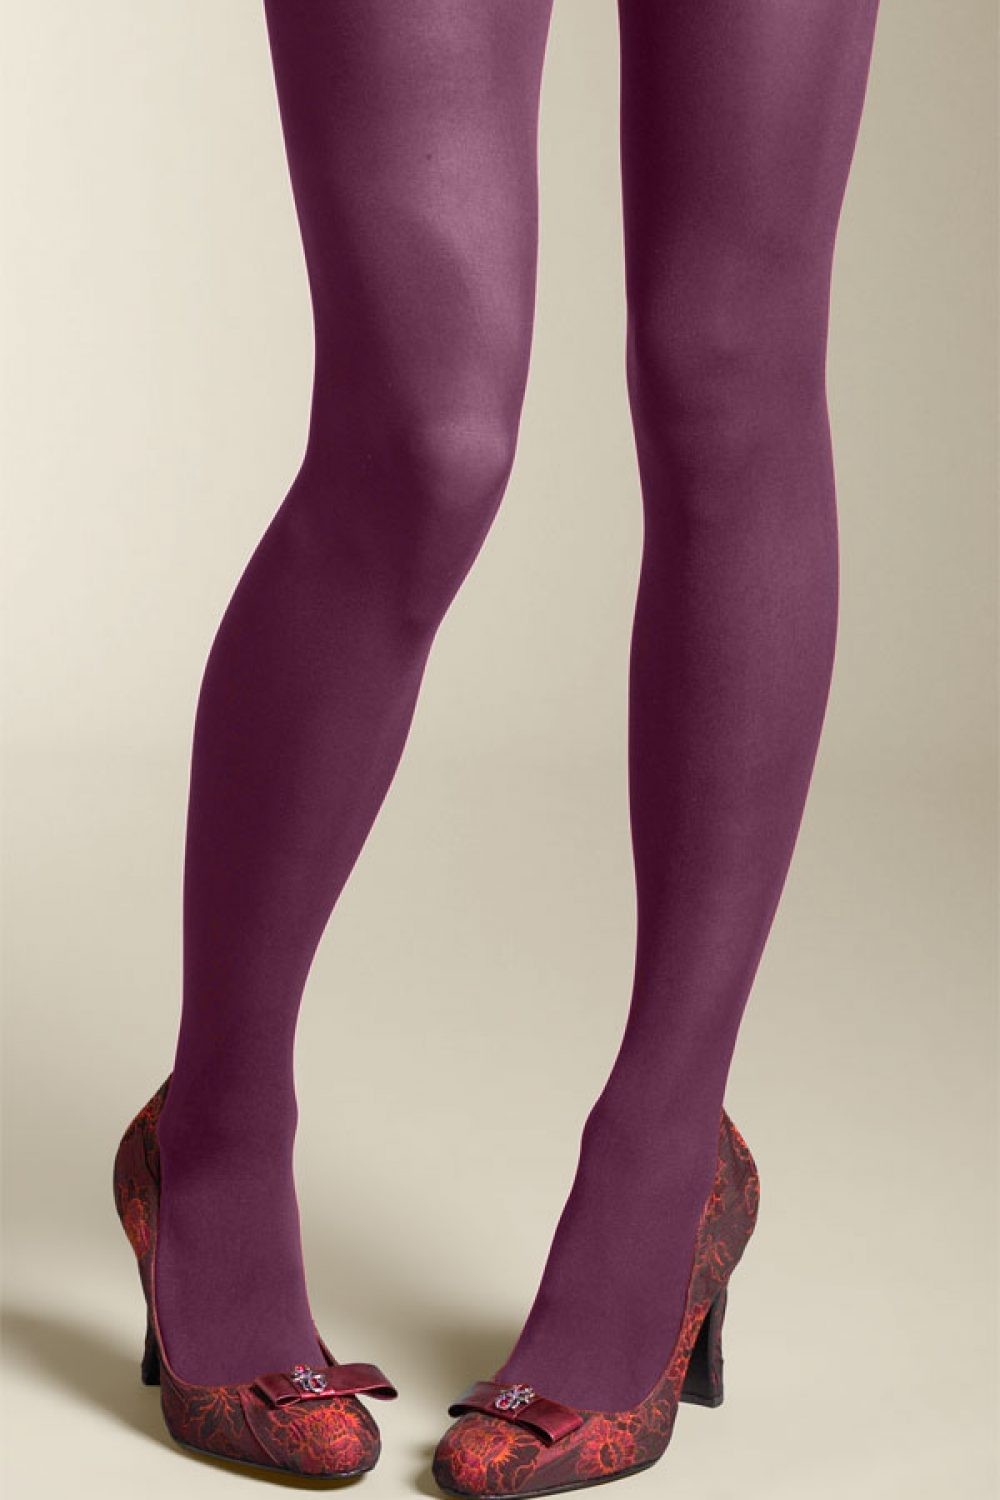 Colored Tights (Purple, Red, Yellow & More!)